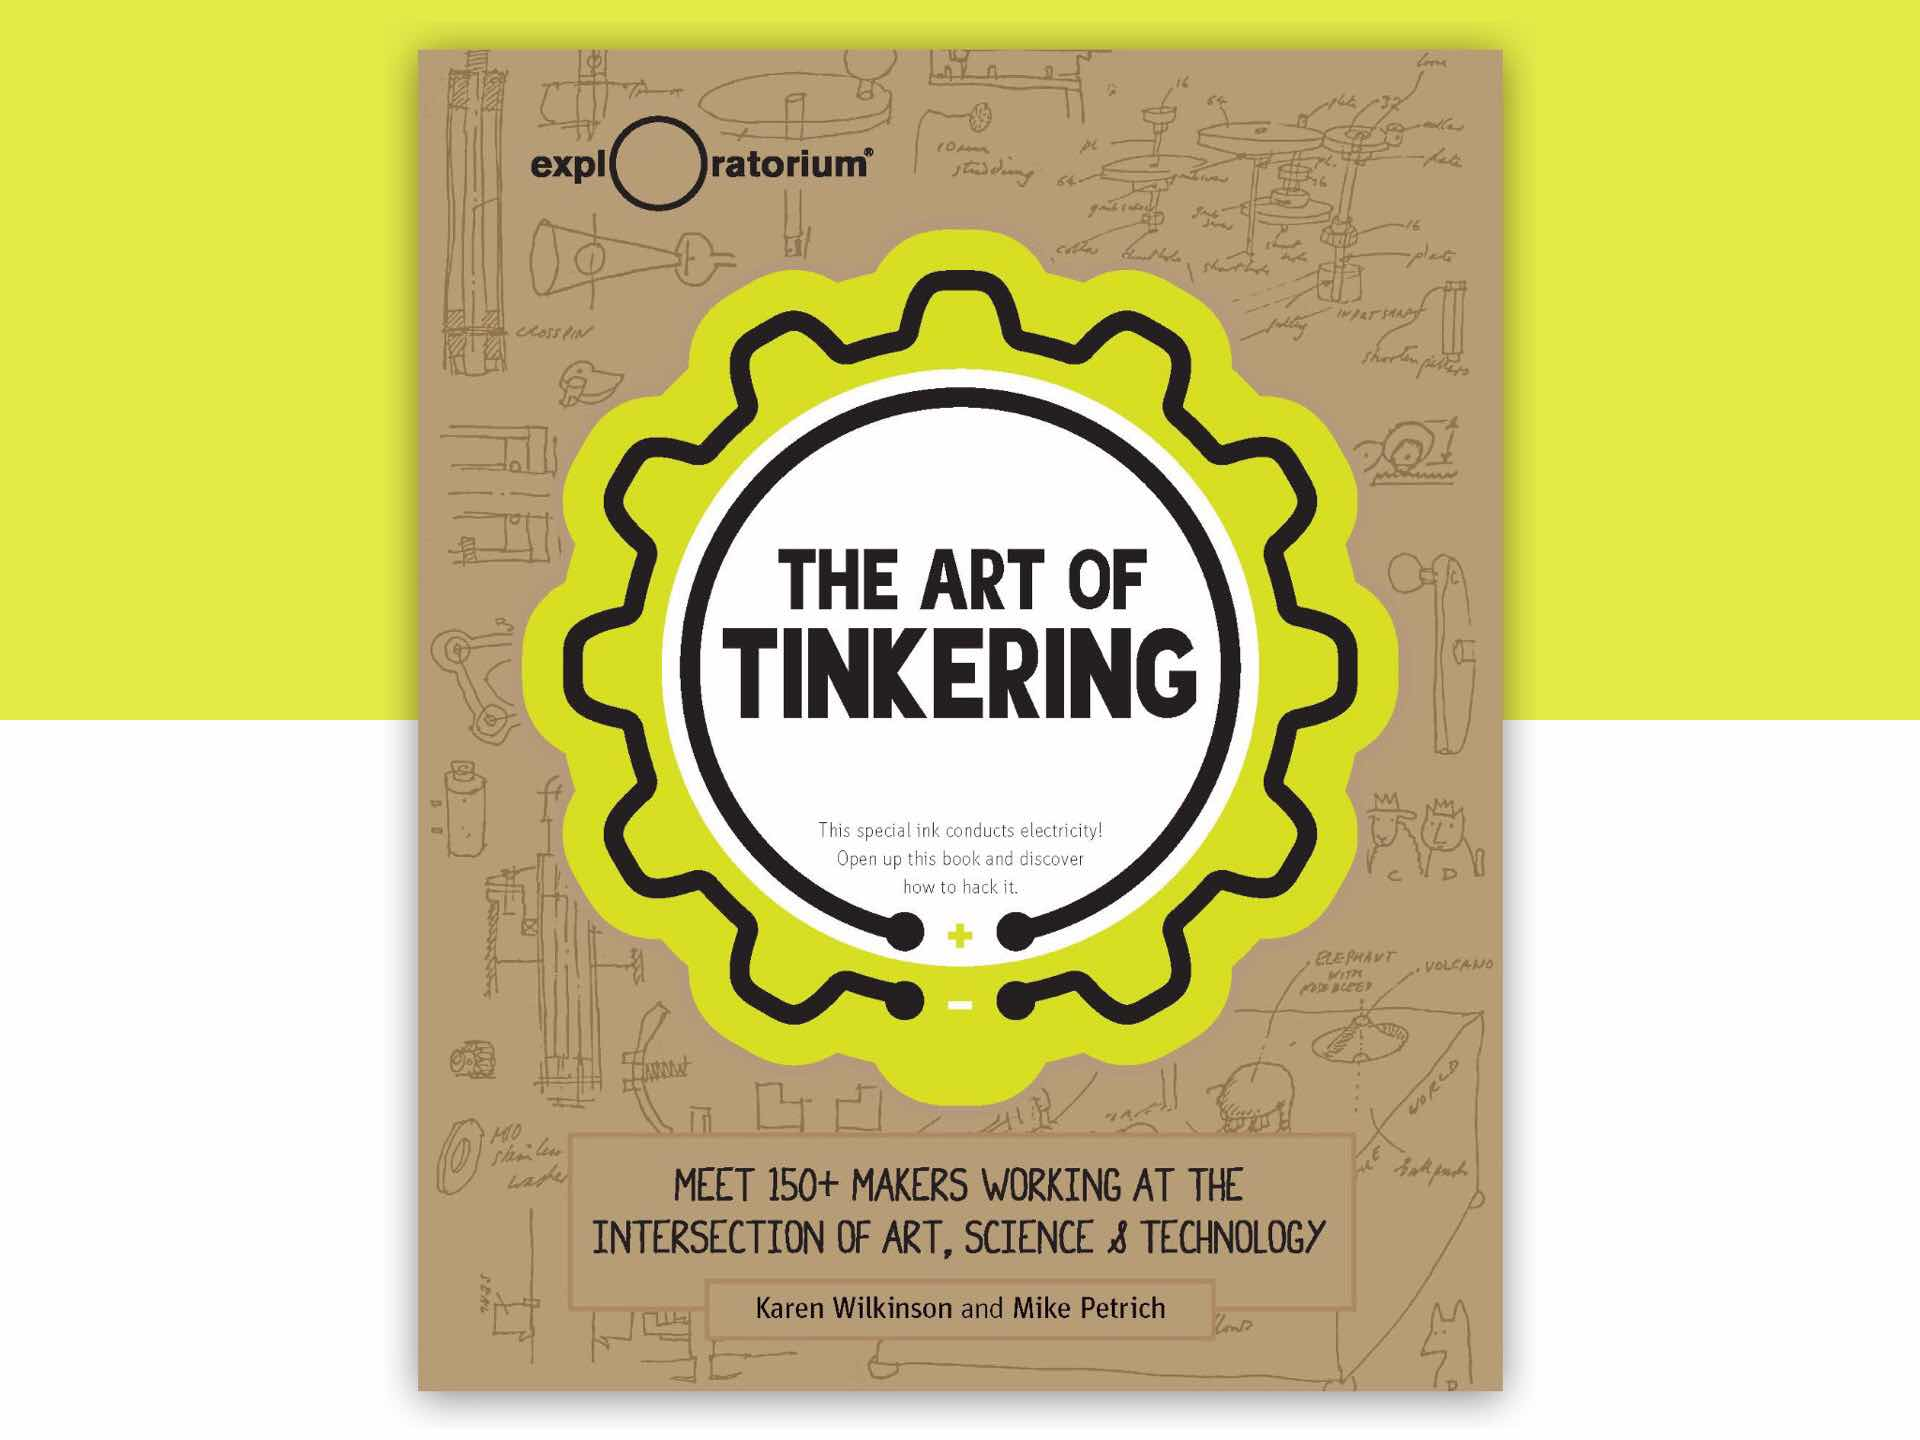 exploratorium-the-art-of-tinkering-book